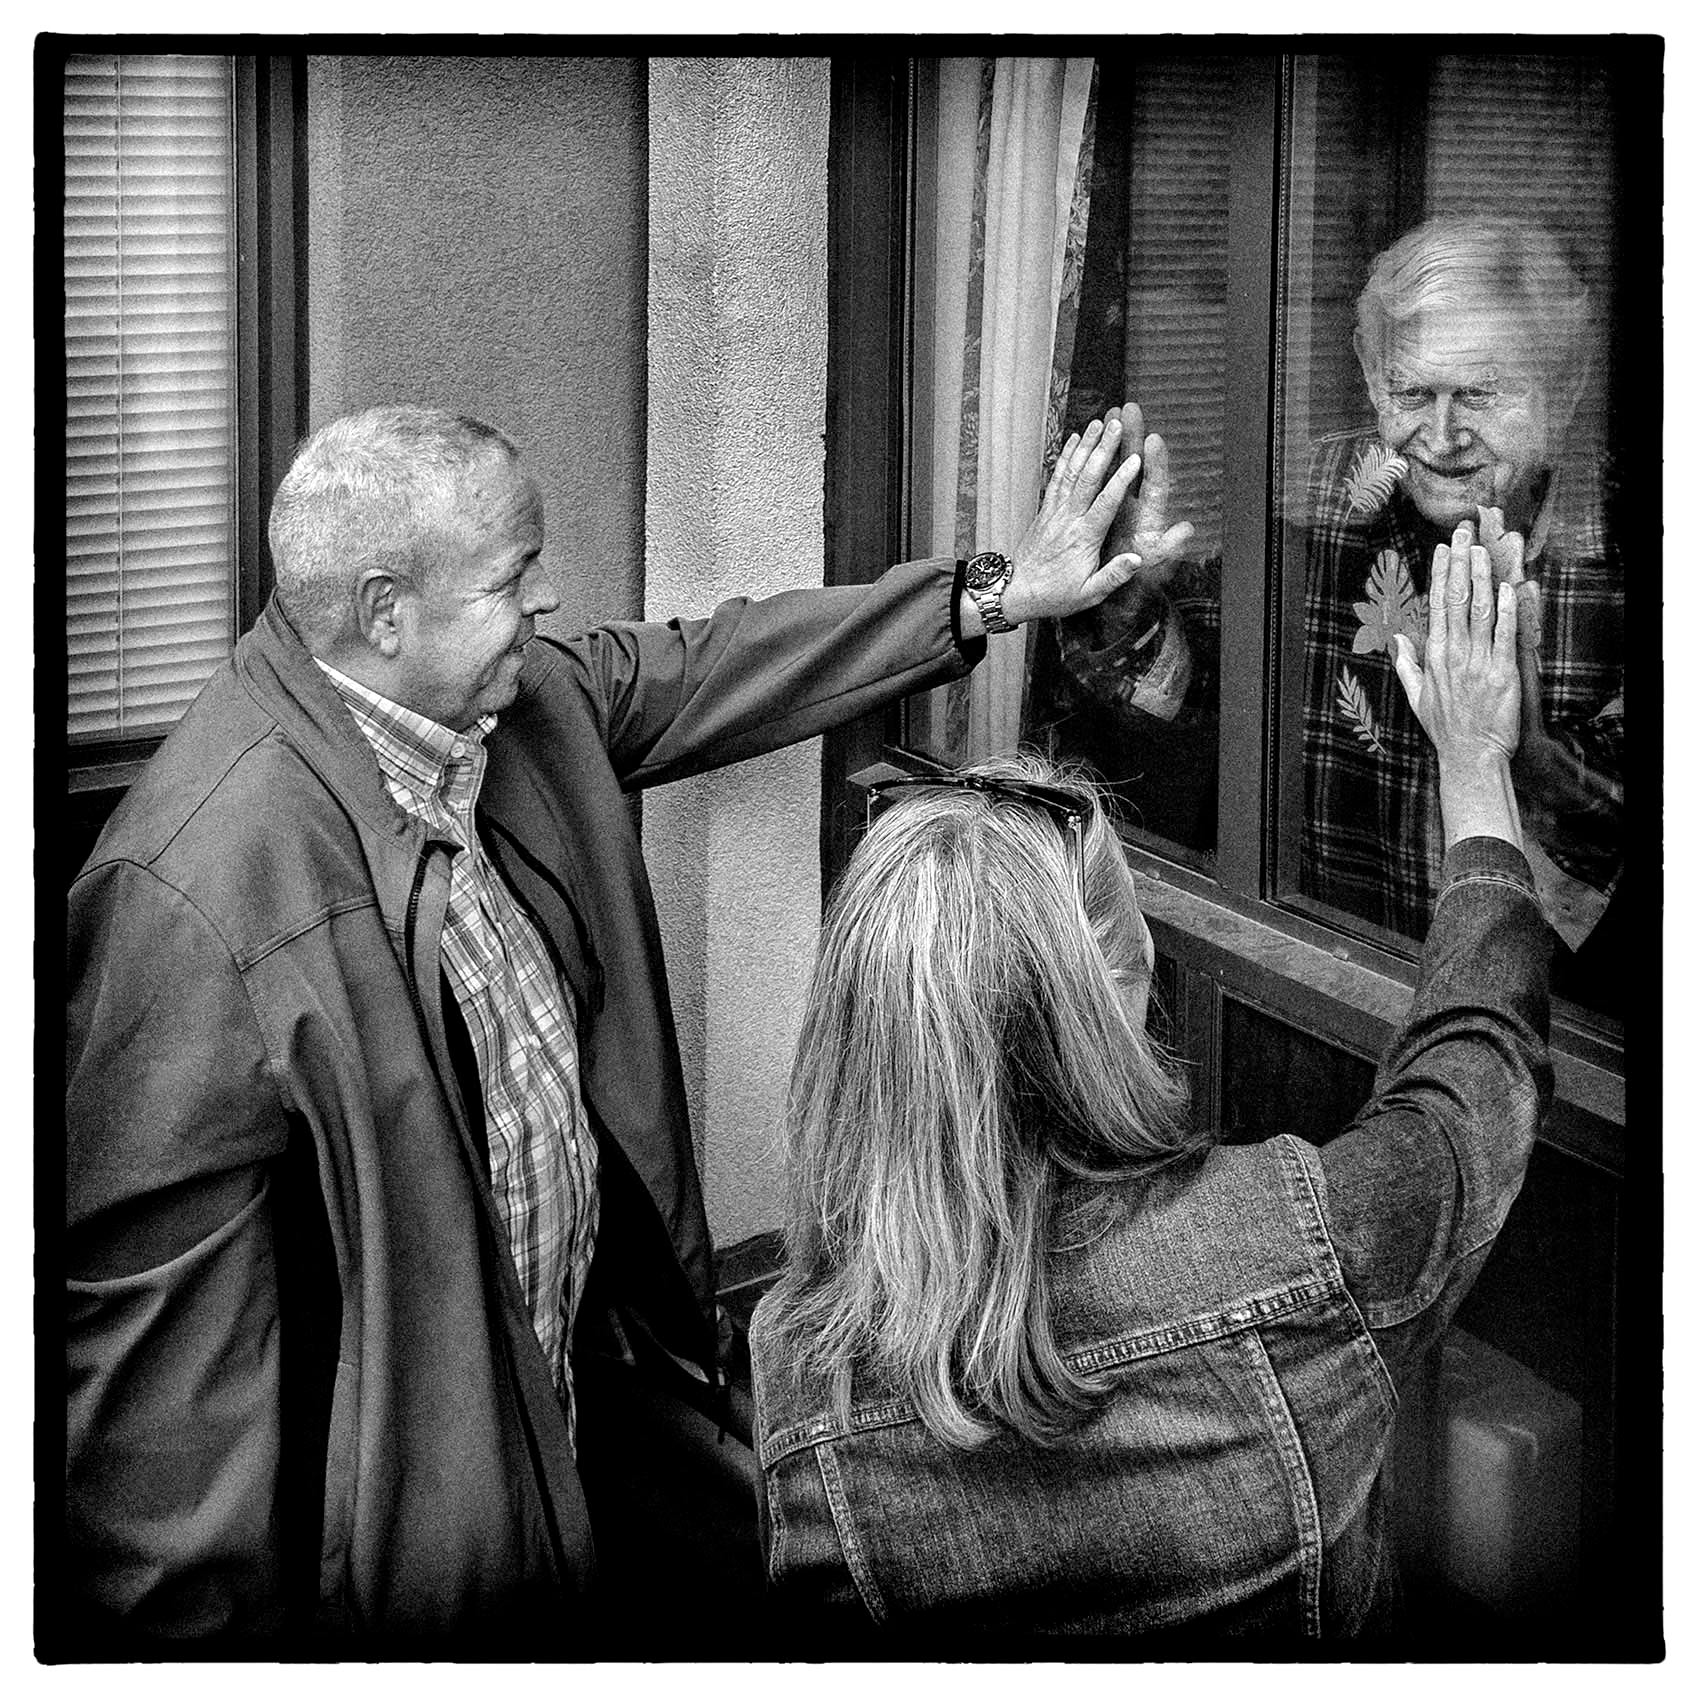 a-son-says-goodbye-to-his-father-through-a-nursing-home-window-during-pandemic